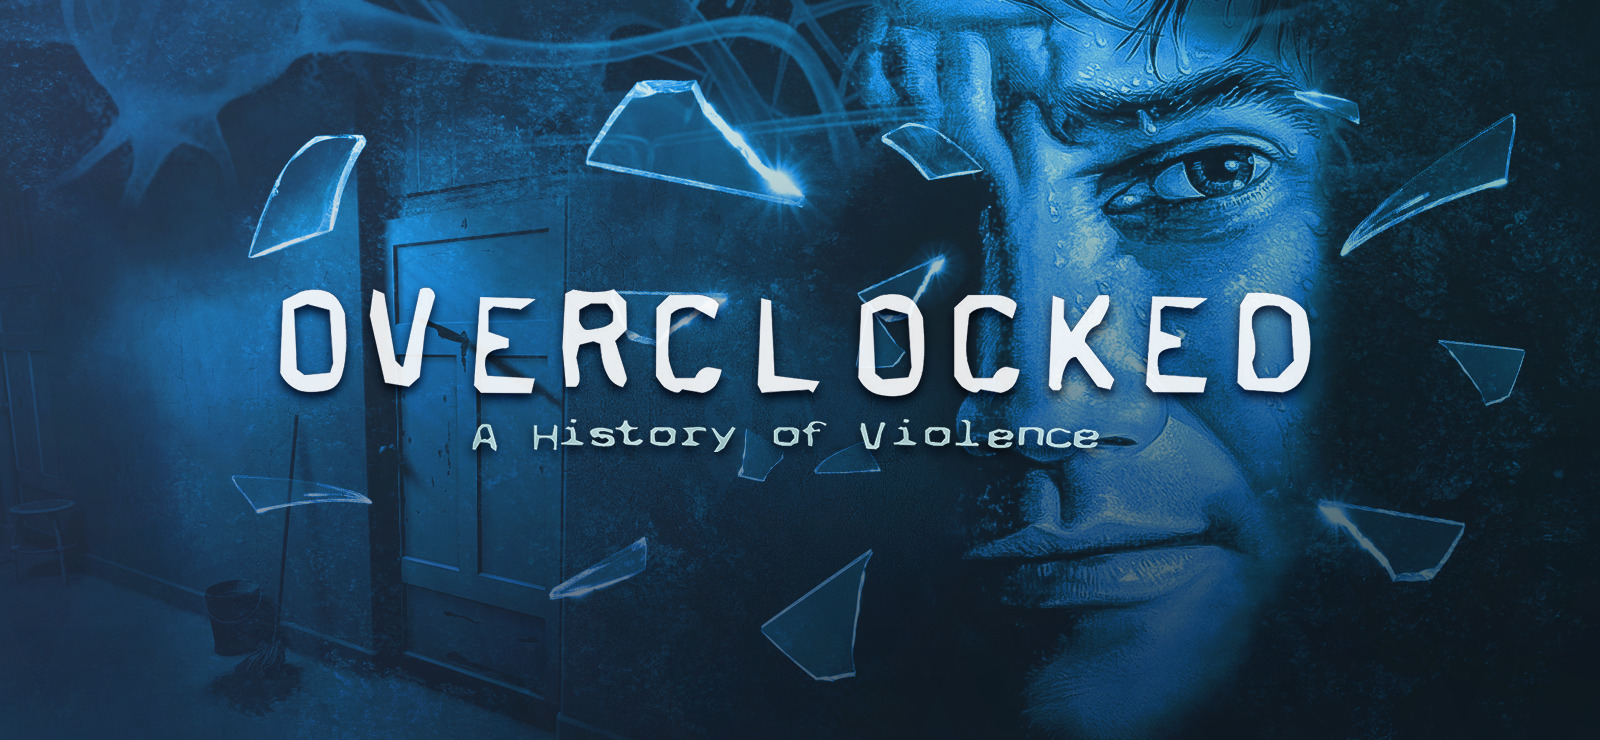 #Overclocked: A History of Violence